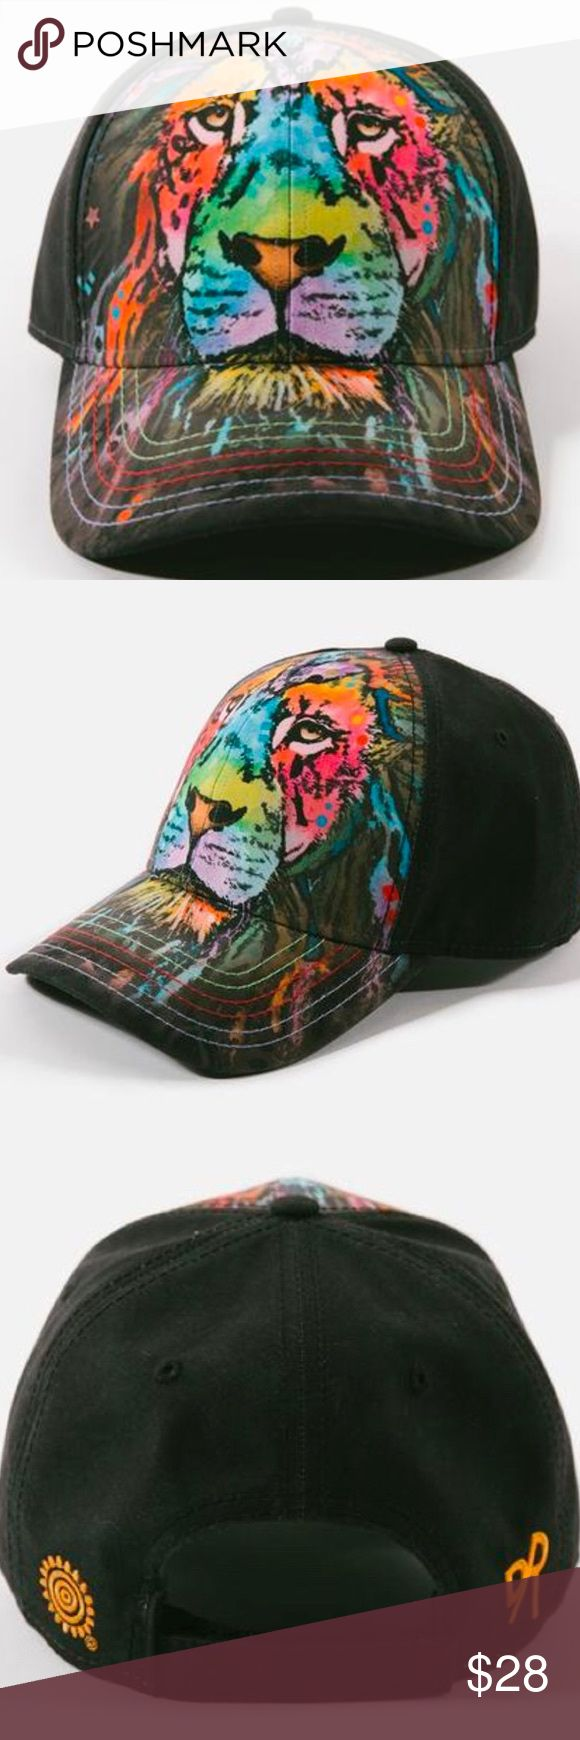 Mane Lion Hat By Dean Russo- O/S Fits Most Assembled from 100% Polyester Velcro Adjustable Strap Low Profile, Six Panel Construction Tri-Colored Stitching on visor Embroidered Dean Russo logo on the back Responsibly sourced overseas Produced using sustainable environmental and social practices One size fits most Dean Russo Accessories Hats